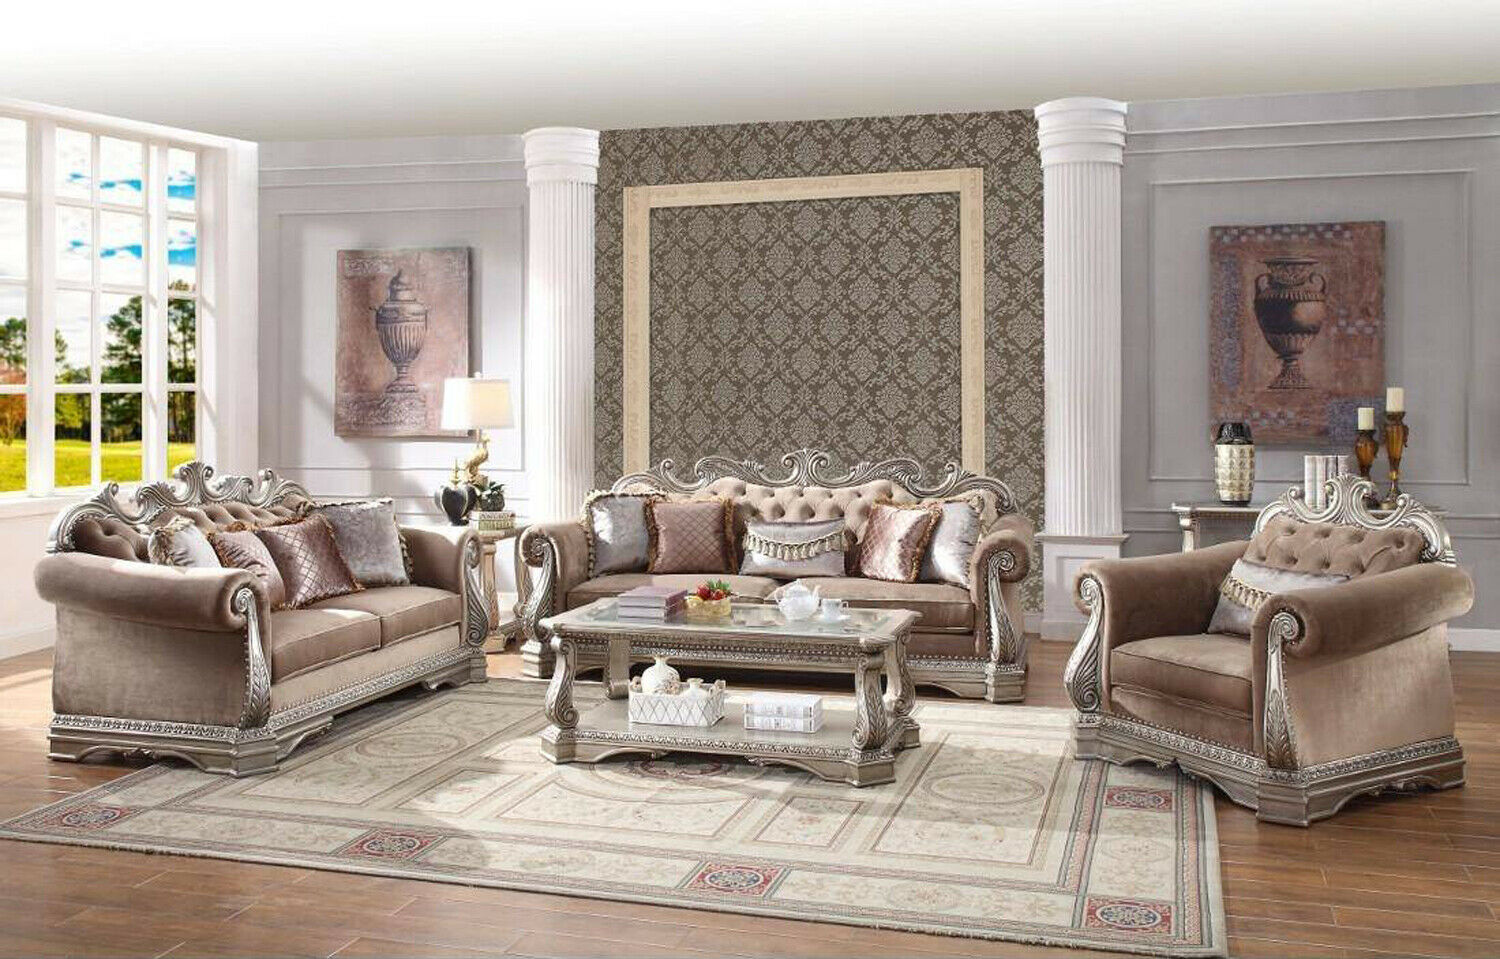 Astonishing Details About Opulent Traditional Ornate Sofa Love Seat Chair 3 Piece Formal Living Room Set Machost Co Dining Chair Design Ideas Machostcouk